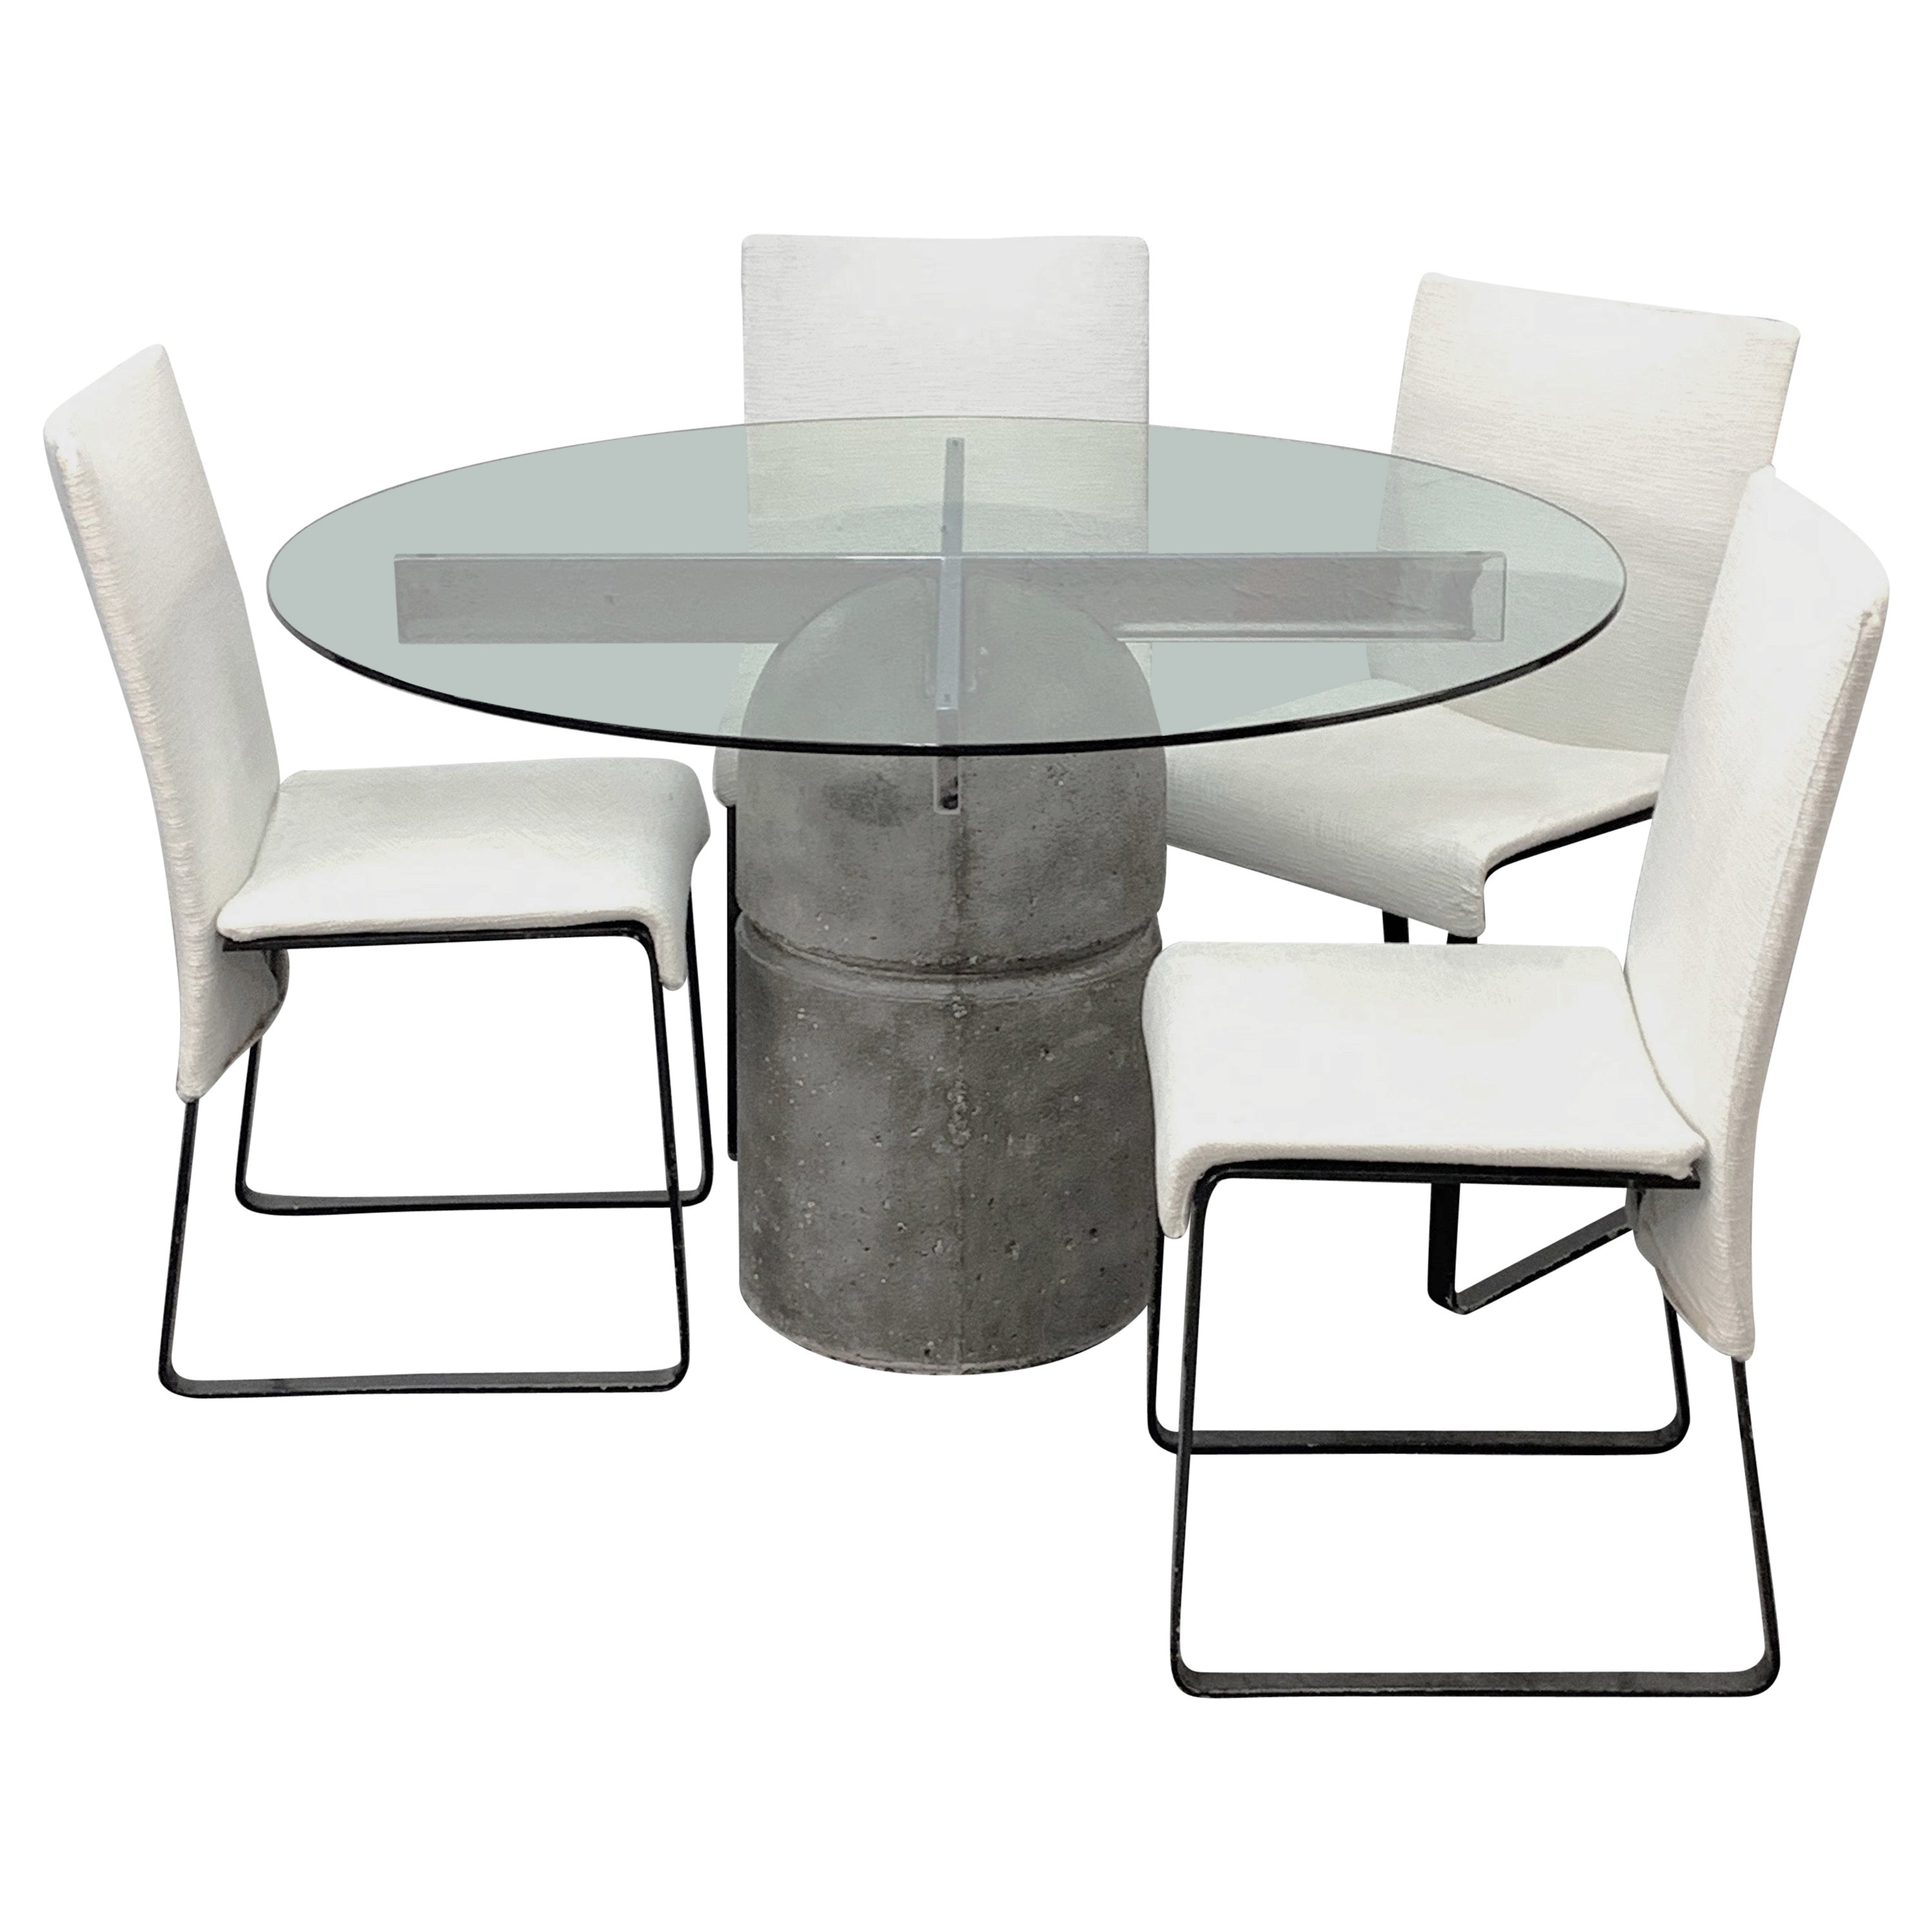 Midcentury Giovanni Offredi Paracarro Dining Table and Chairs for Saporiti, 1973